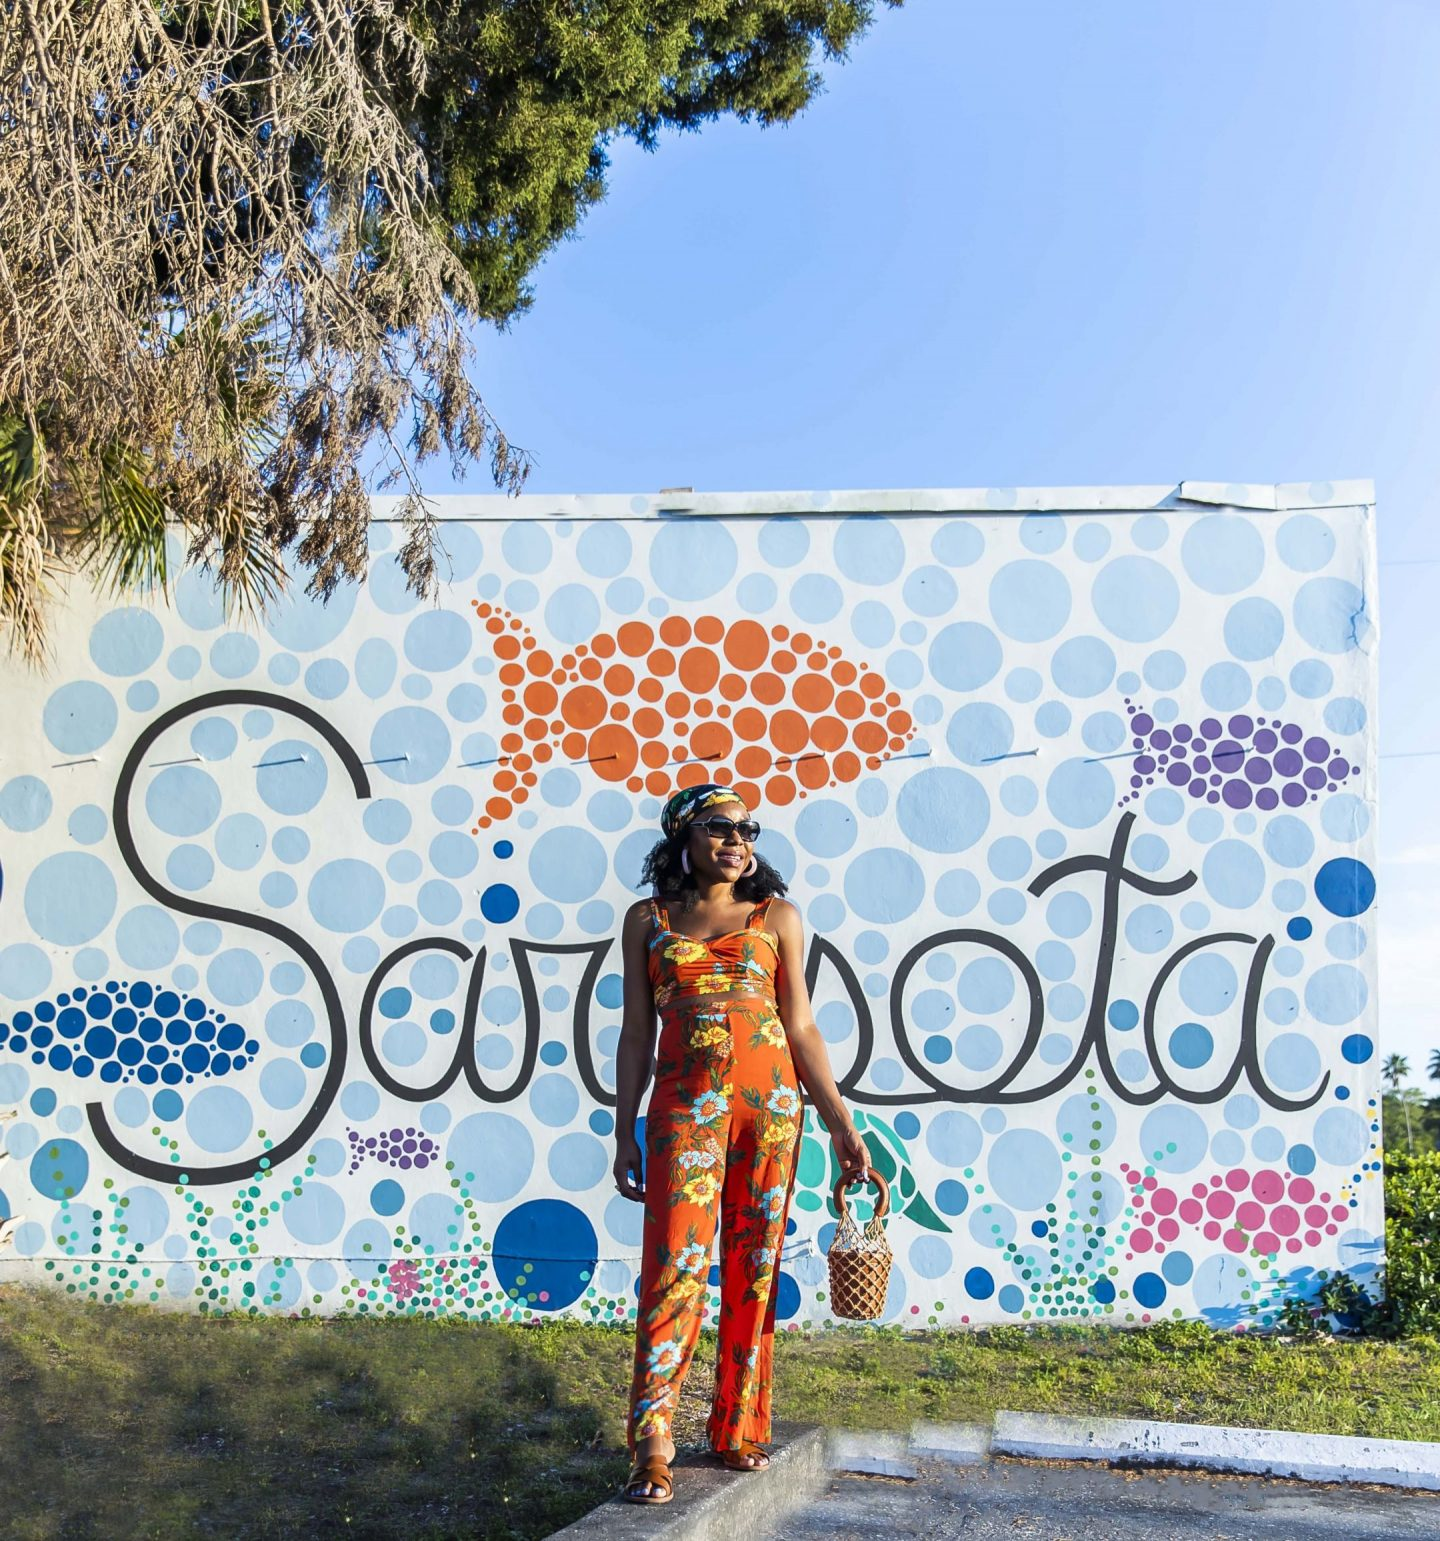 Top Five things to do in Sarasota, Florida